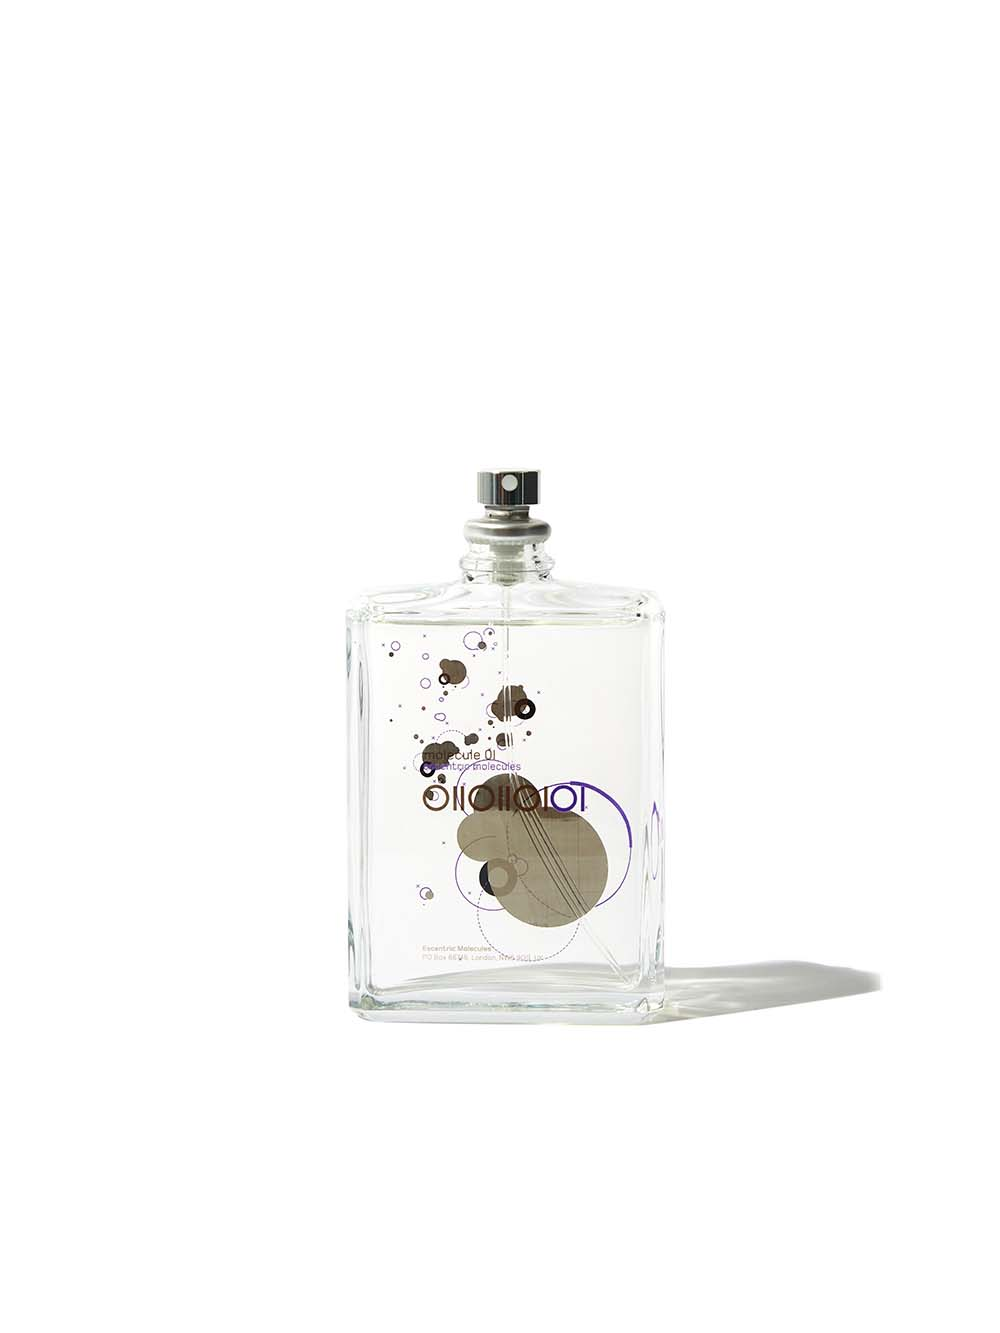 A_Very_Good_Christmas_Guide-Goodhood-2018-Signpost_Fragrance.jpg